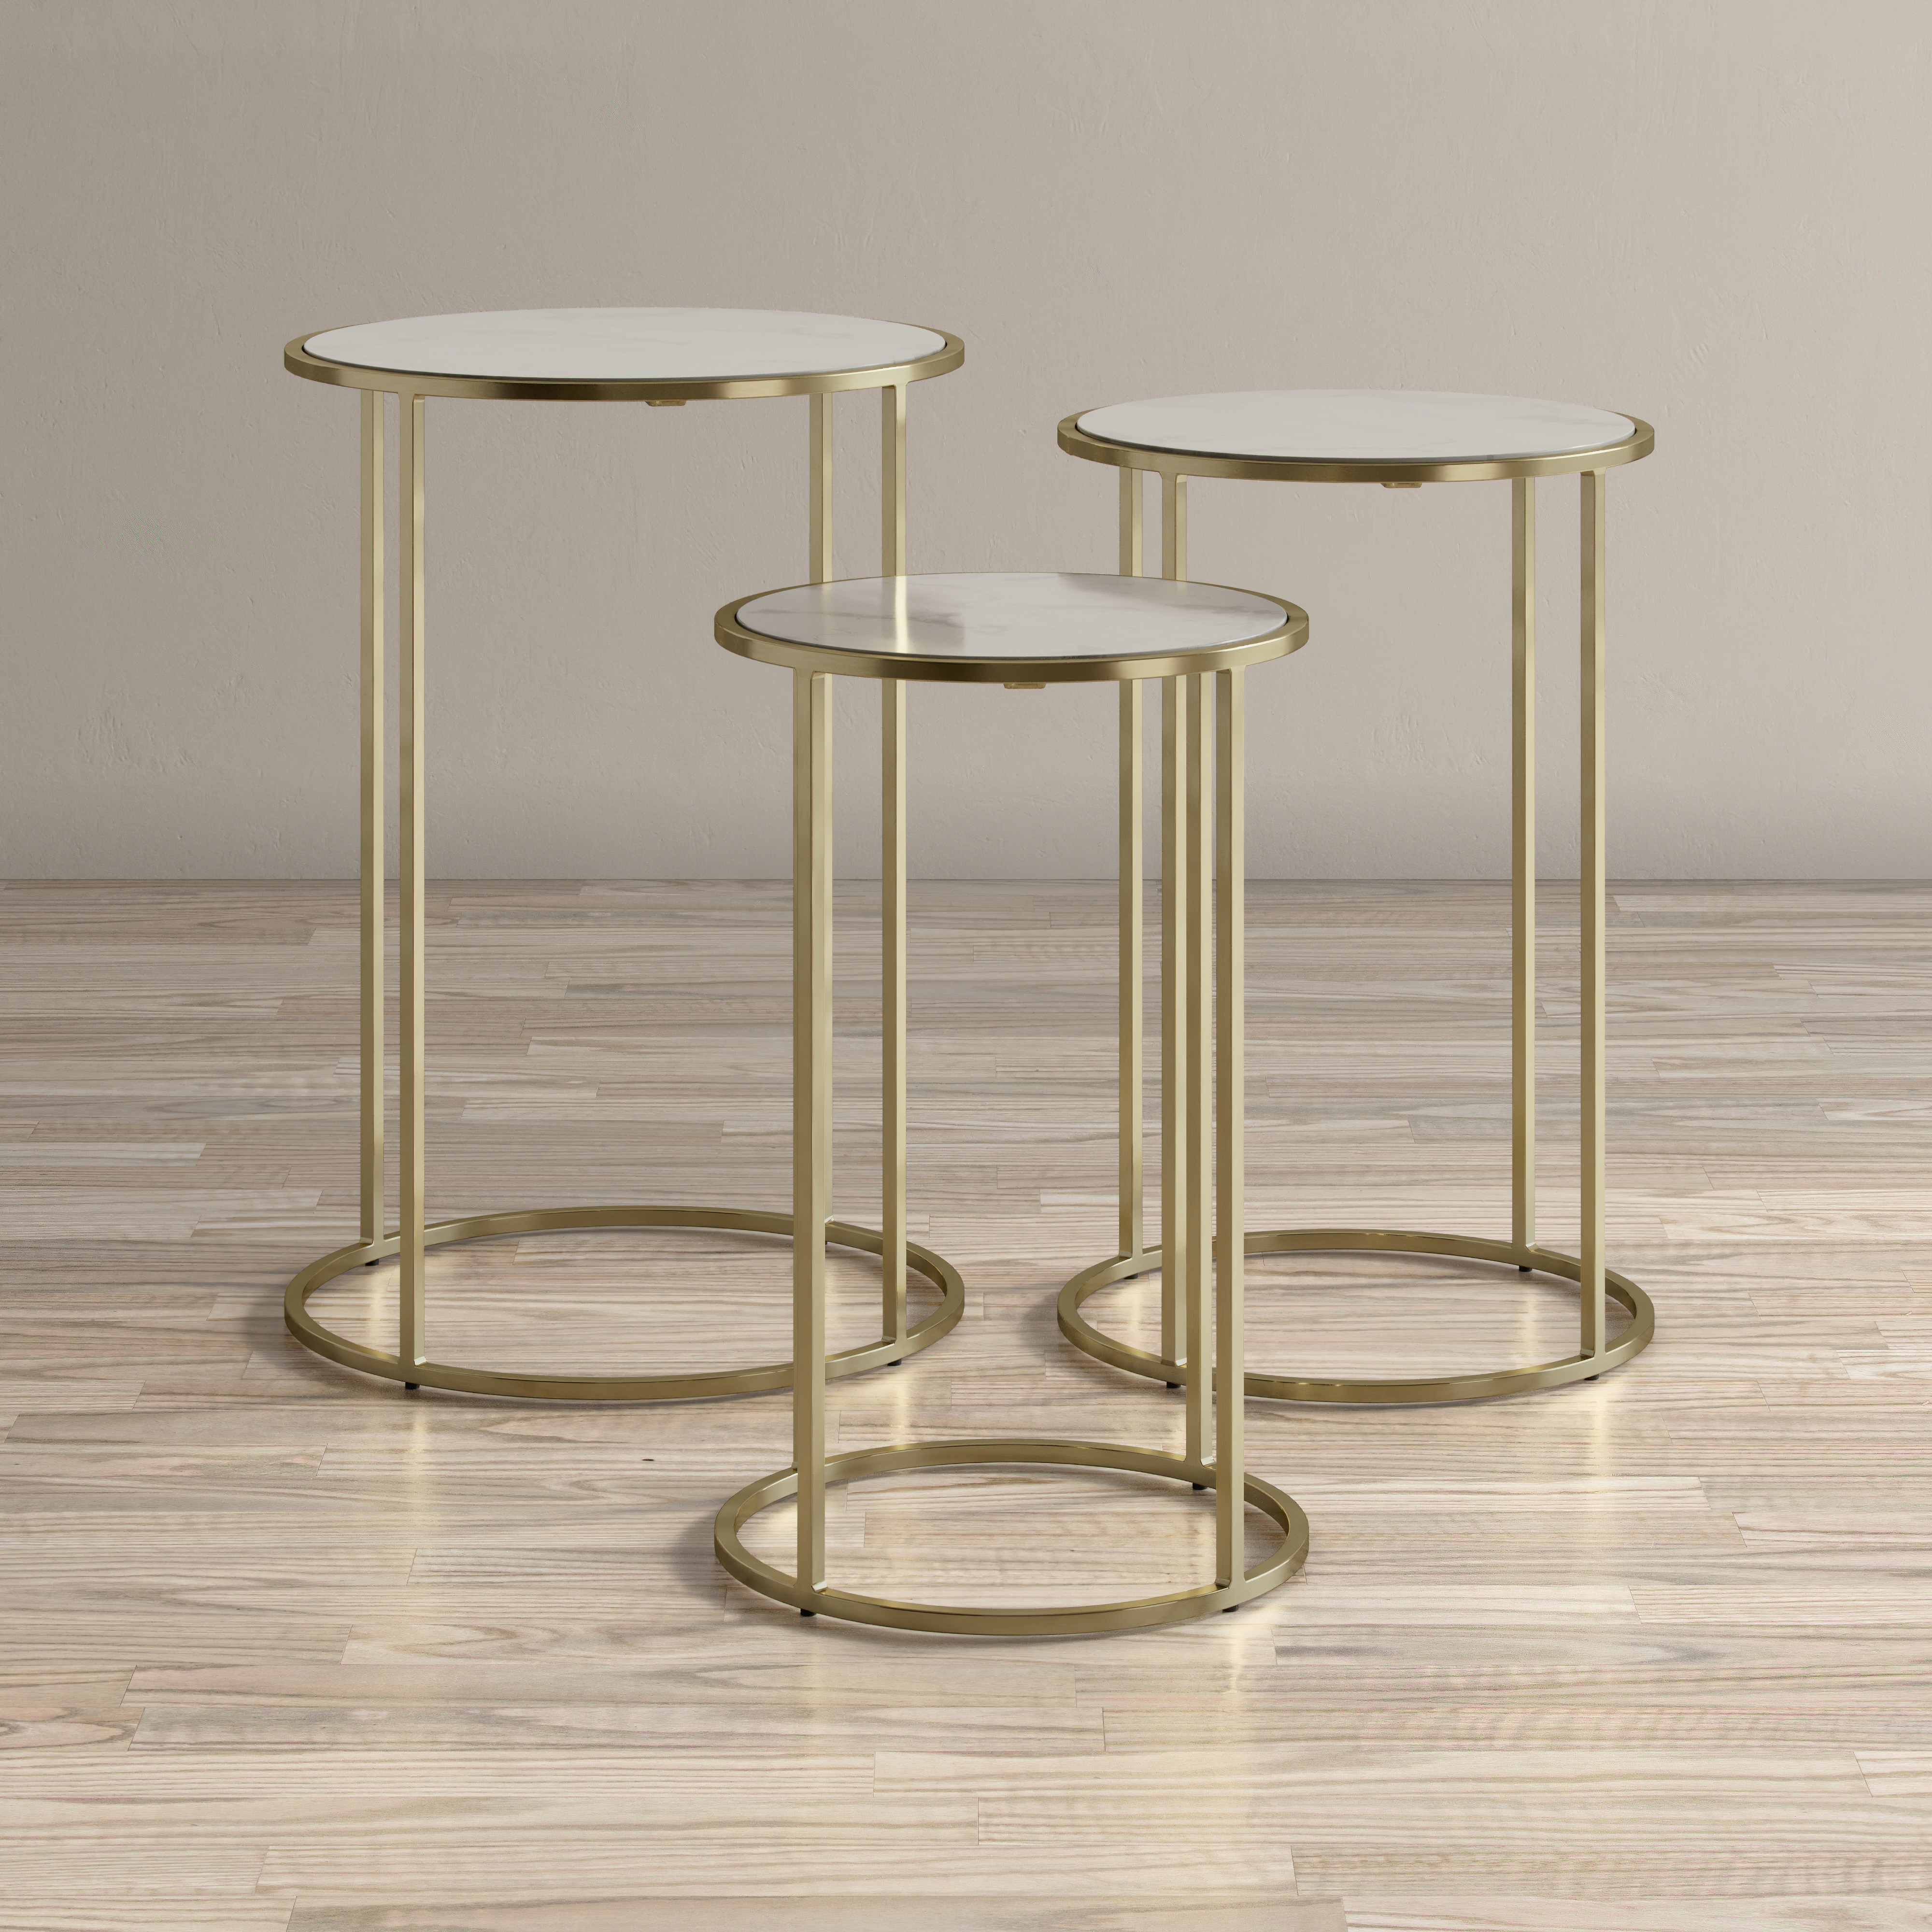 Global Archive Riviera Nesting Table - Set of 3 by VFM Signature at Virginia Furniture Market